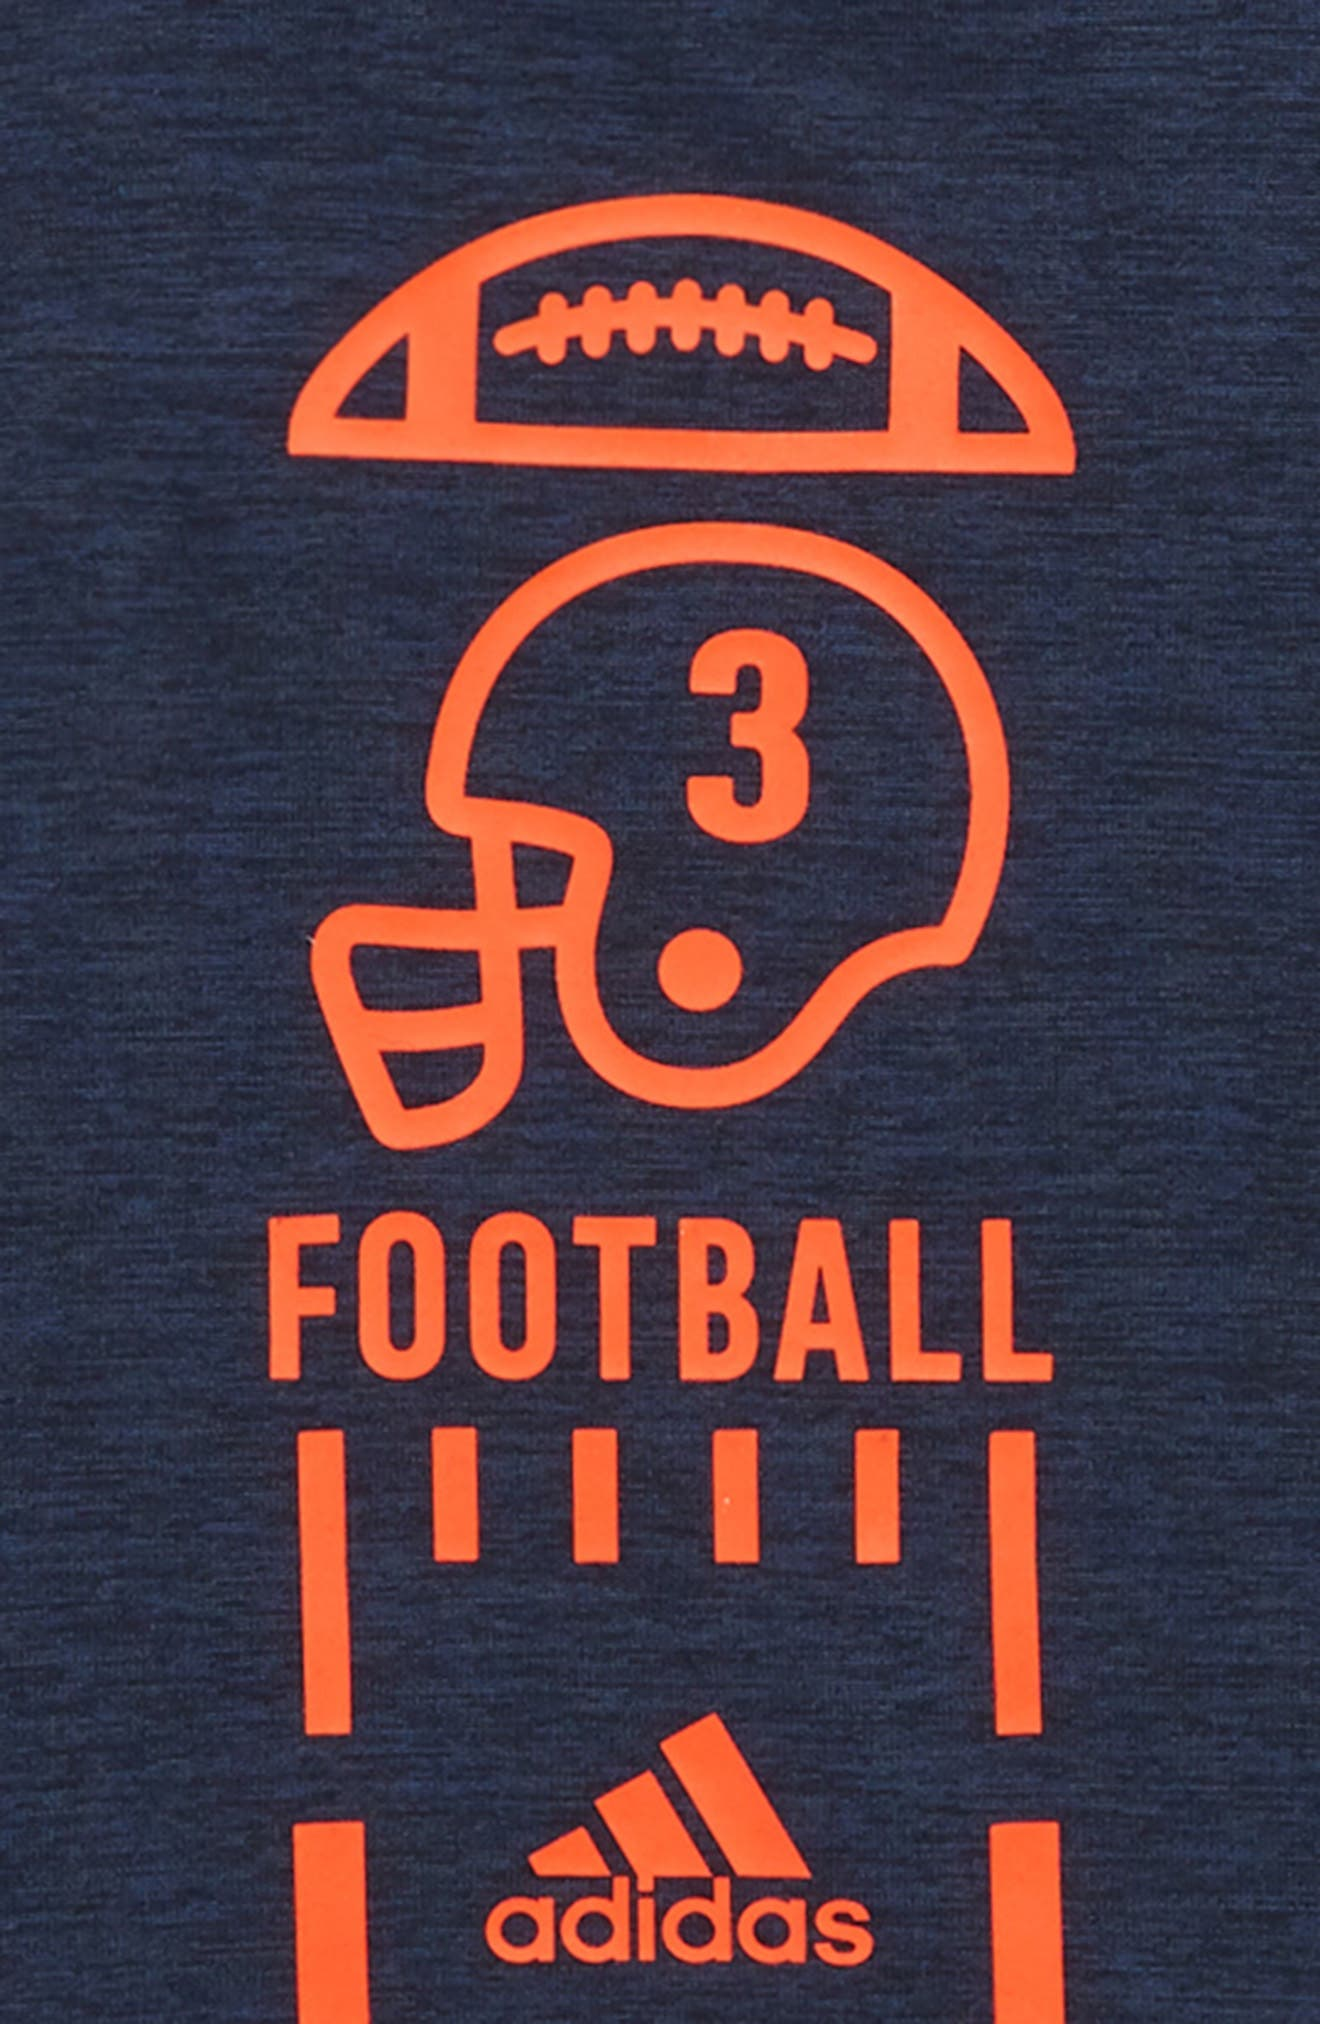 Football Vertical Collage T-Shirt,                             Alternate thumbnail 2, color,                             412